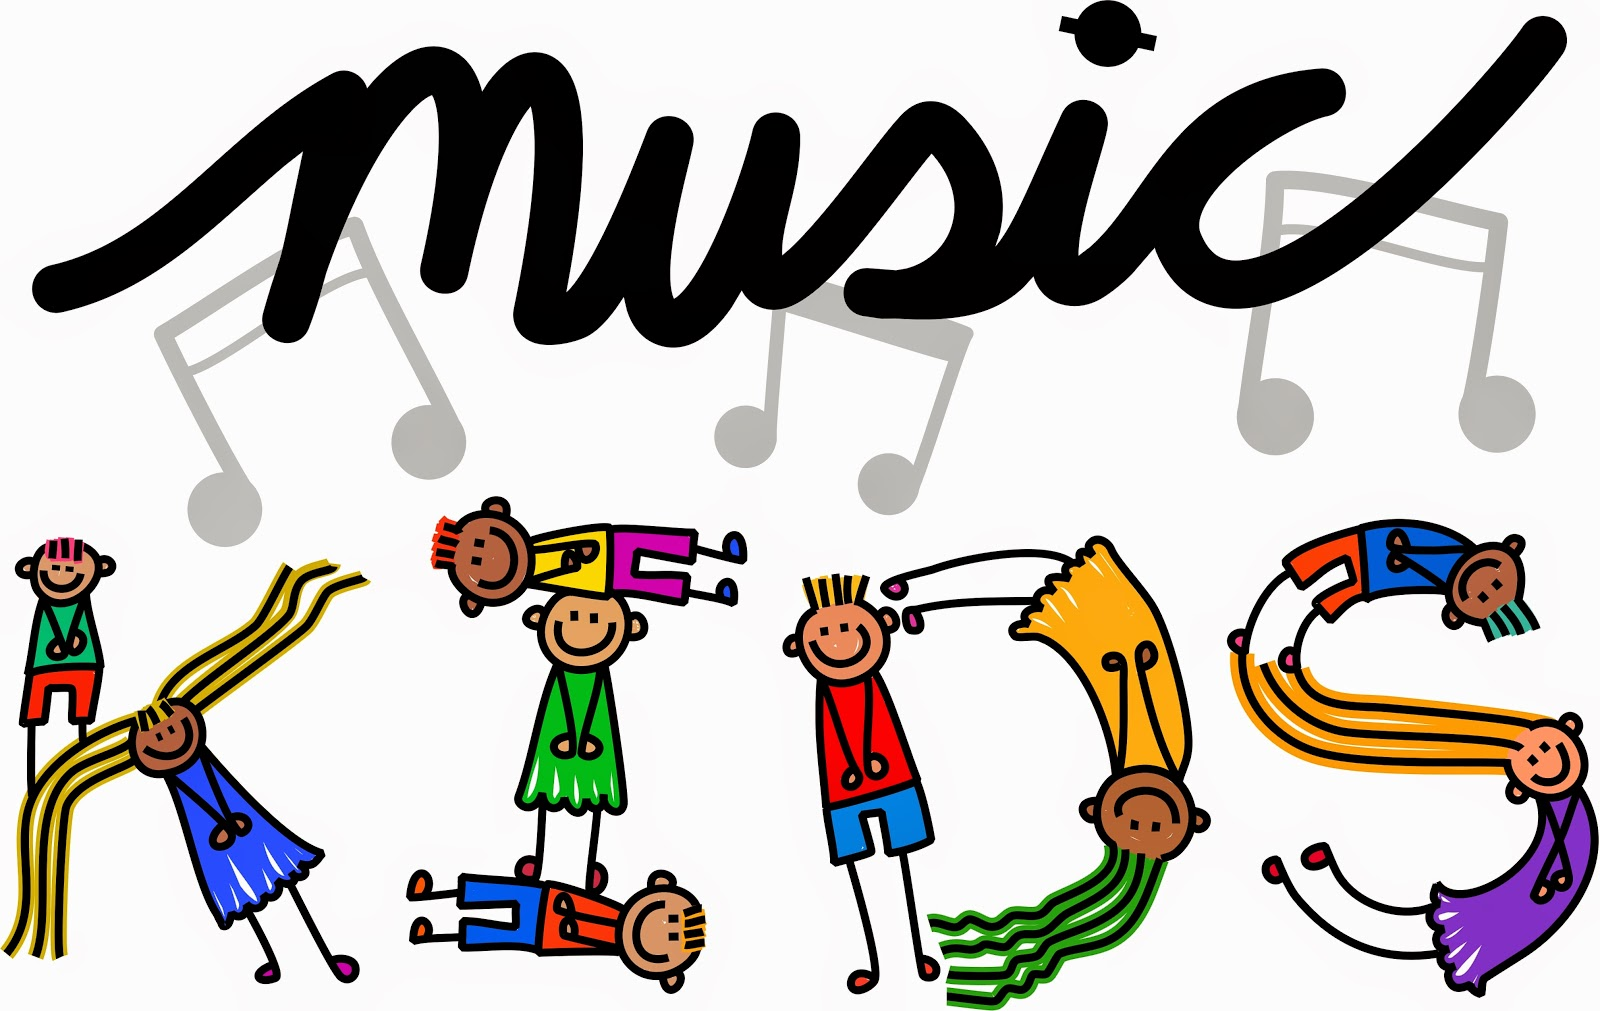 music children rhythm title text keeping beat movement cartoon clipart clip kid musical company magical patterns artists